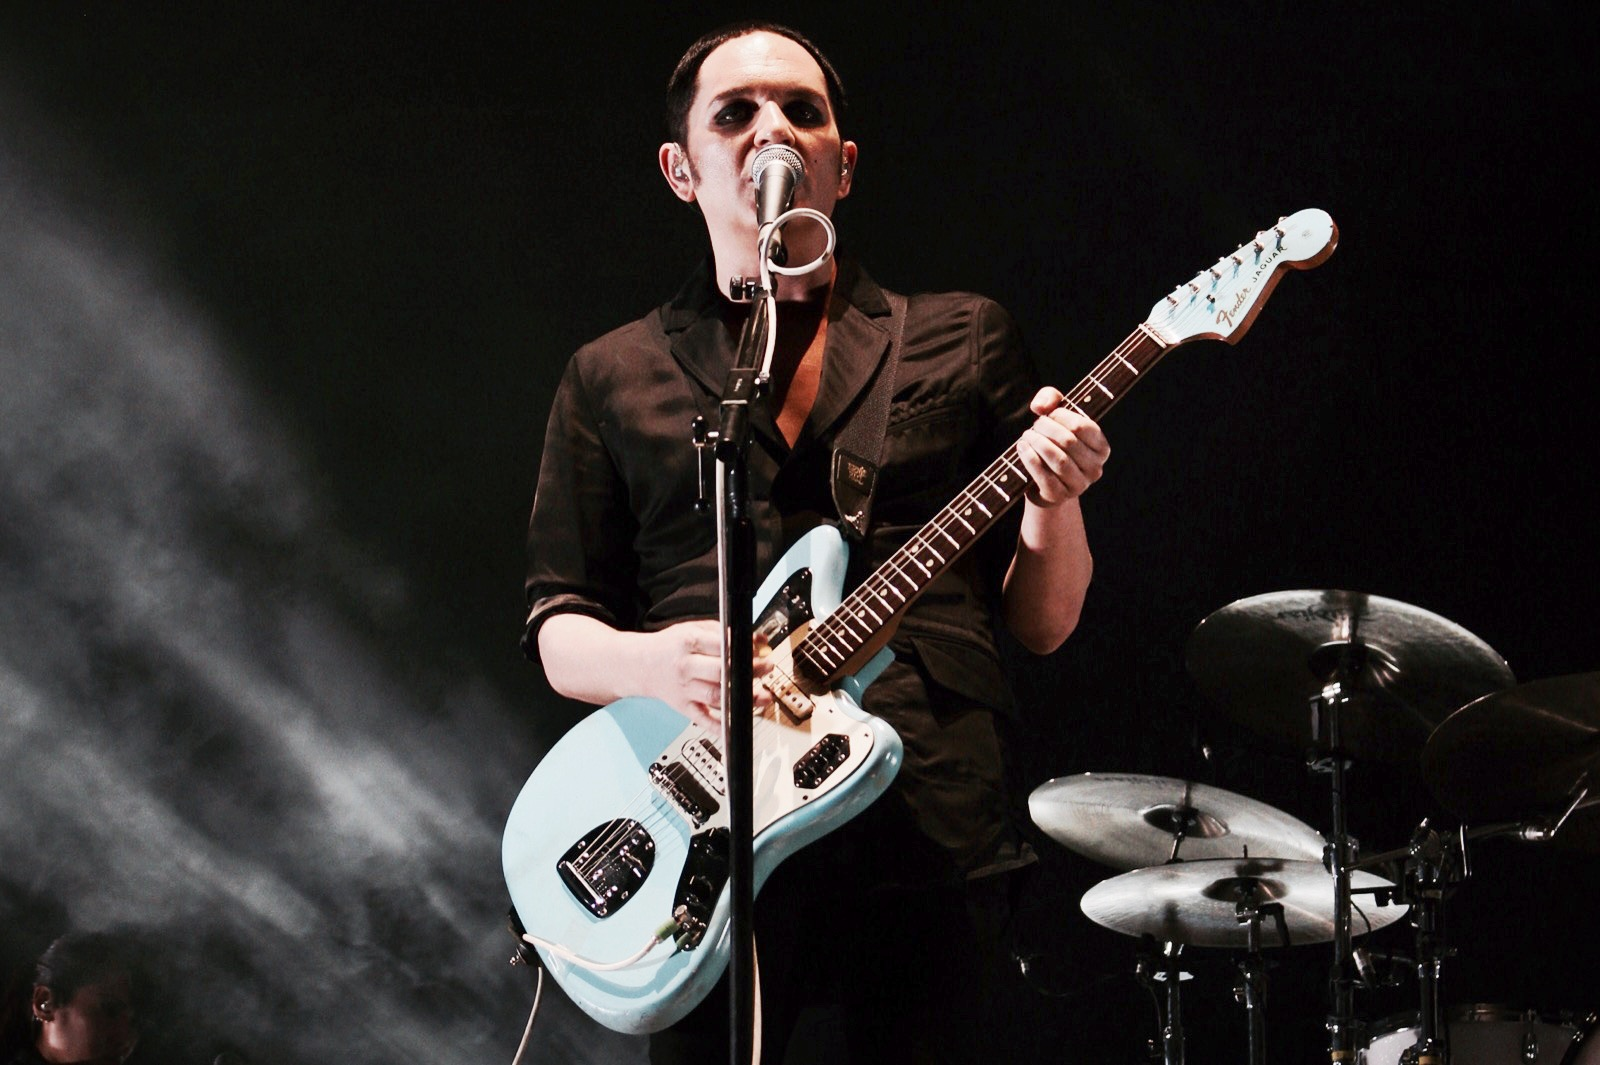 08-Placebo-fm4-frequency-festival-2017-thexed-xedblog